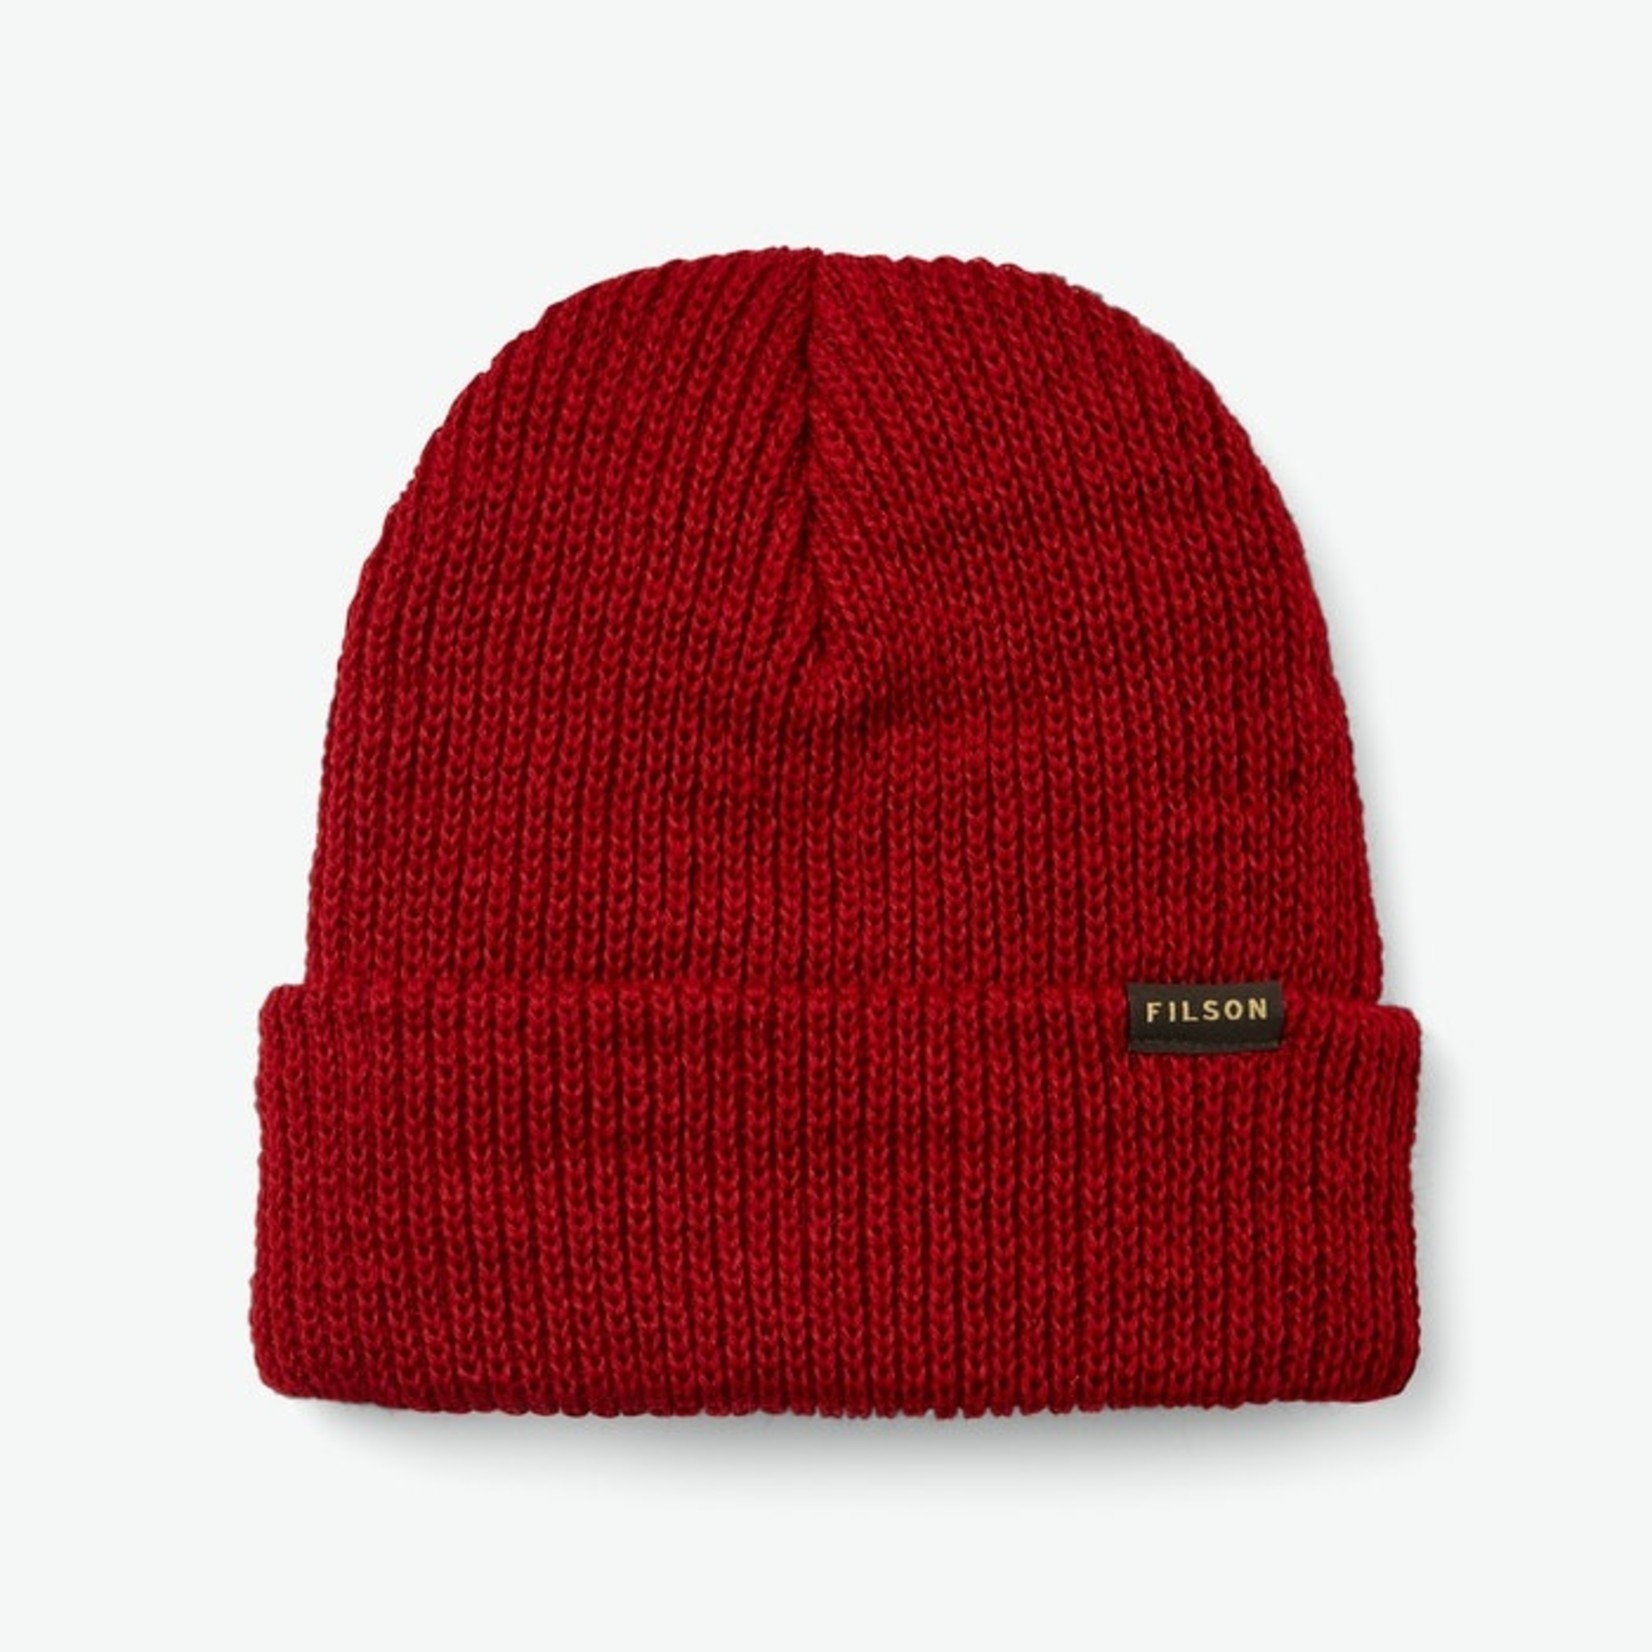 Filson Filson 11030235 Watch Cap One Size Fits - Most Red